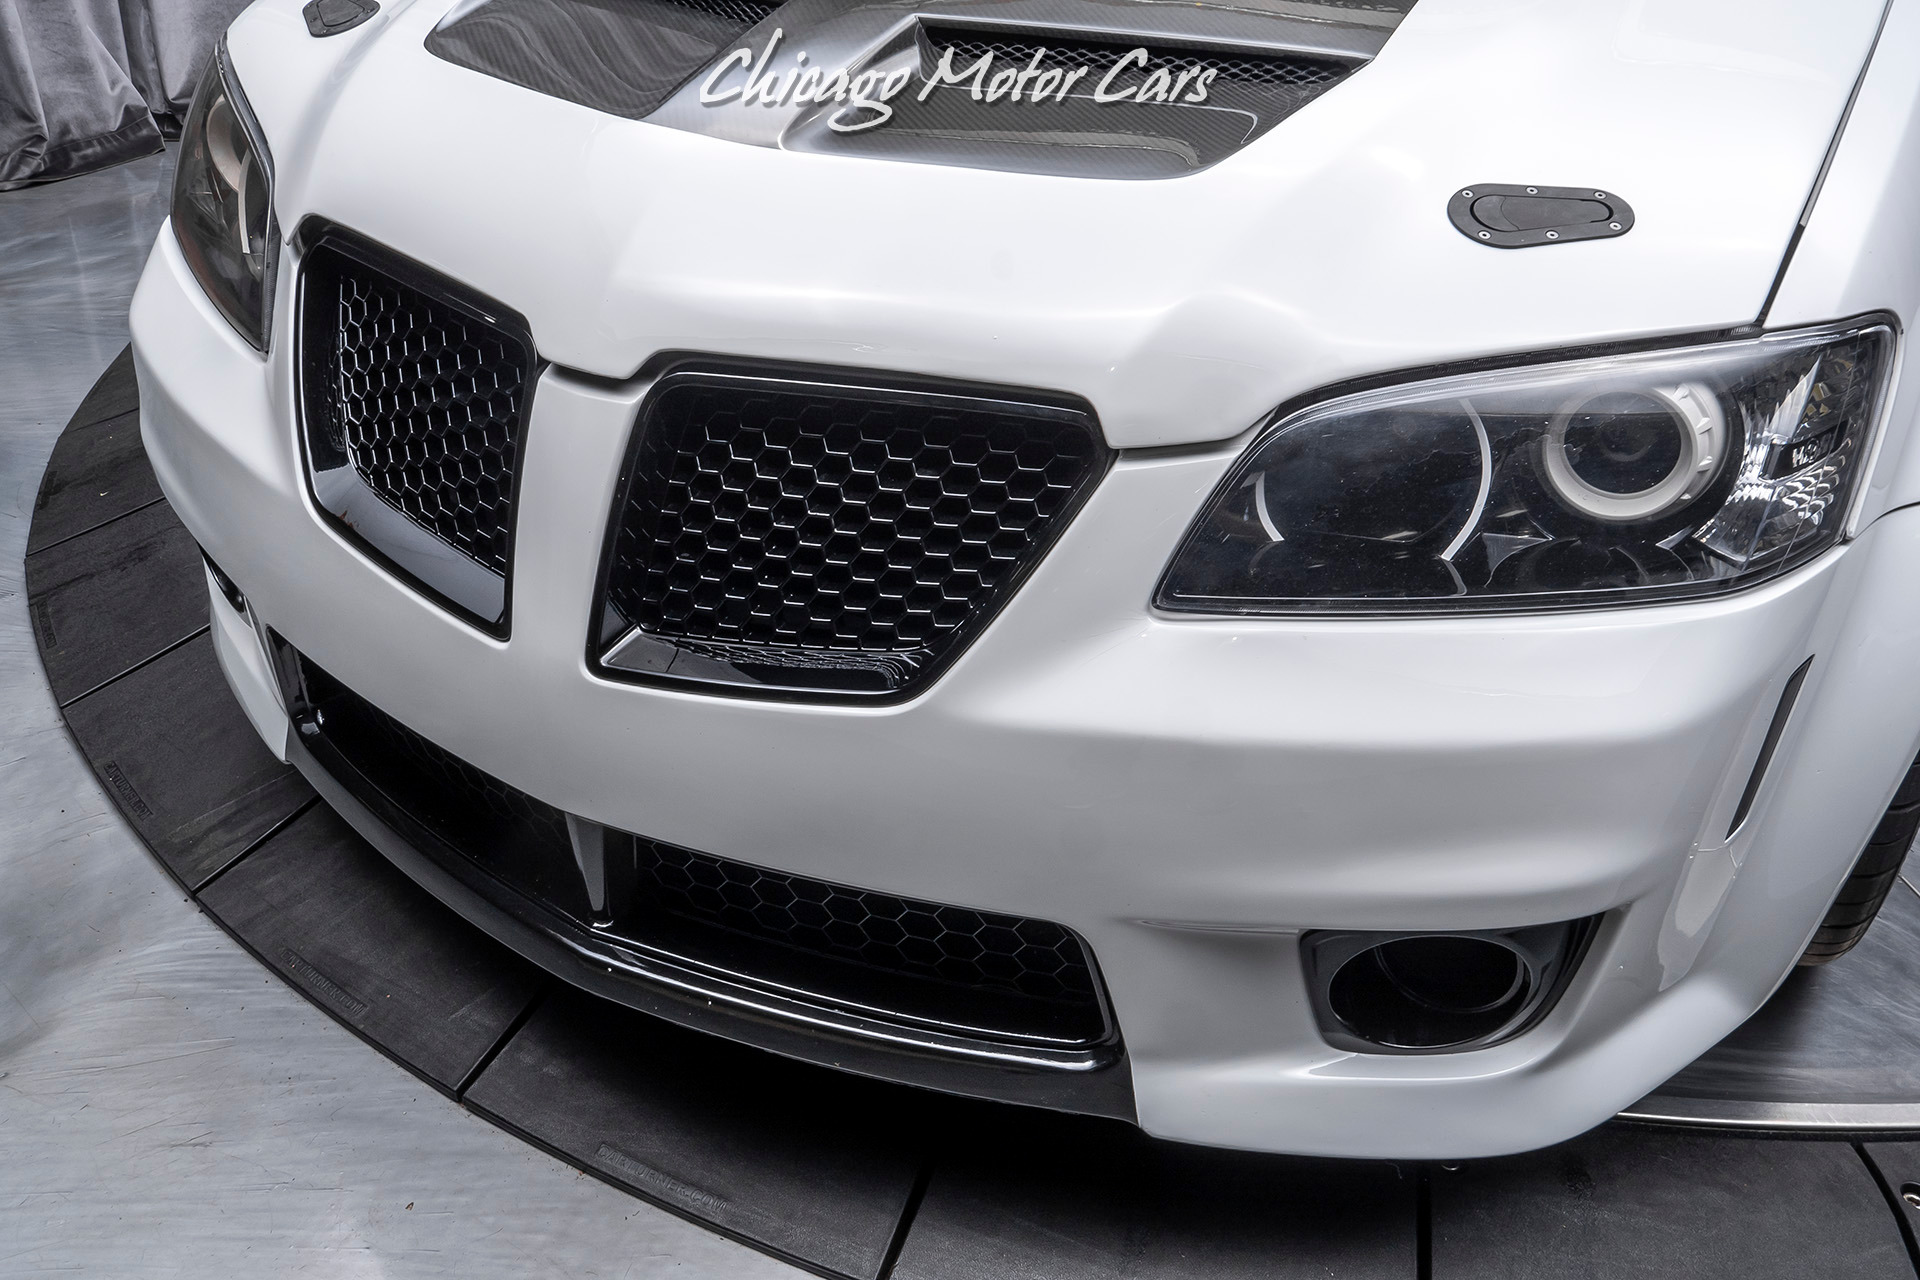 used 2009 pontiac g8 supercharged 6 0 v8 900 hp for sale 27 800 chicago motor cars stock 9l189339 used 2009 pontiac g8 supercharged 6 0